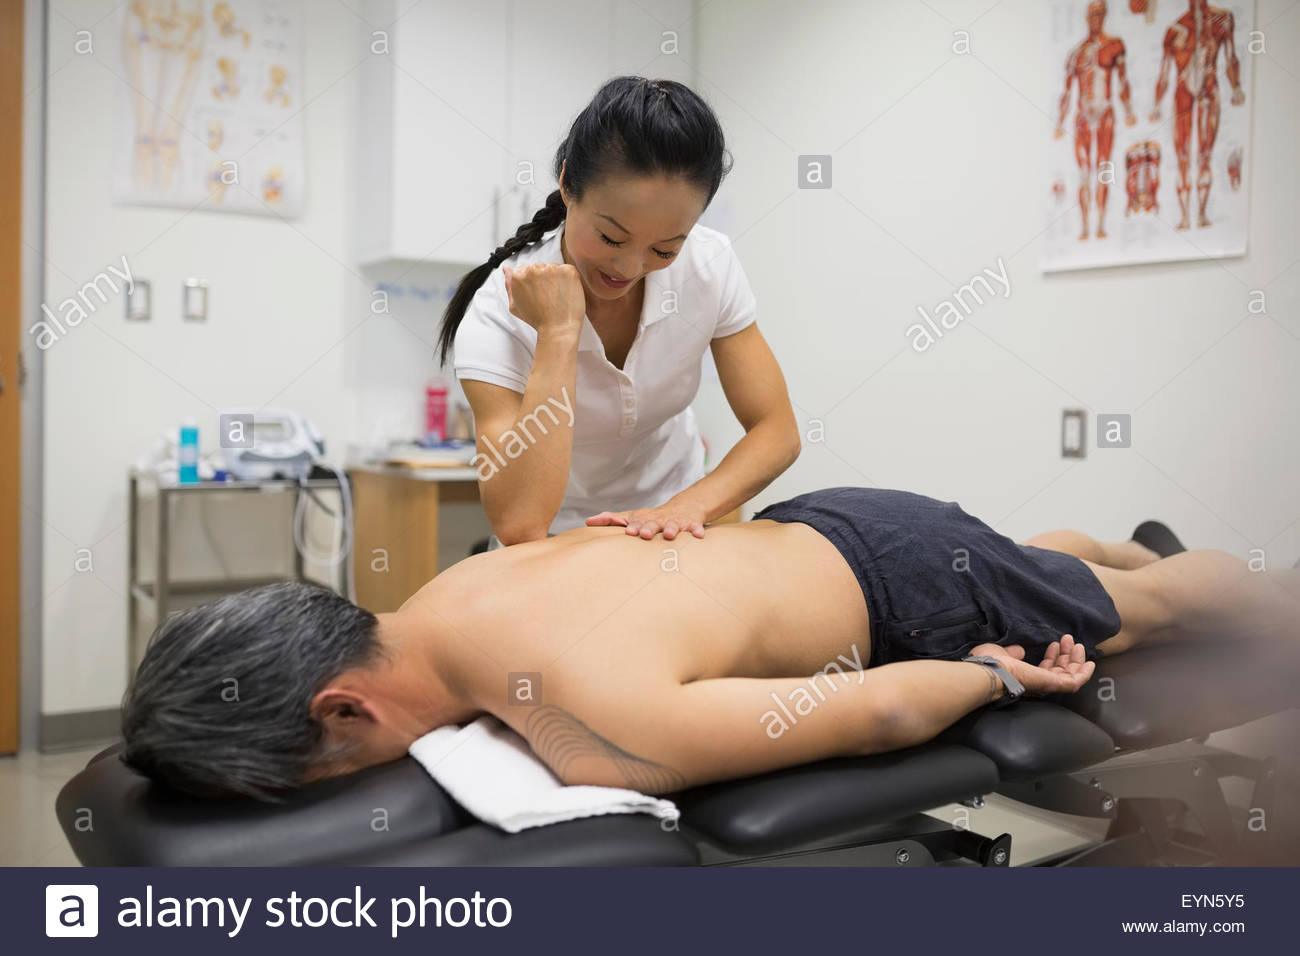 Physical therapist using elbow to massage patient back - Stock Image